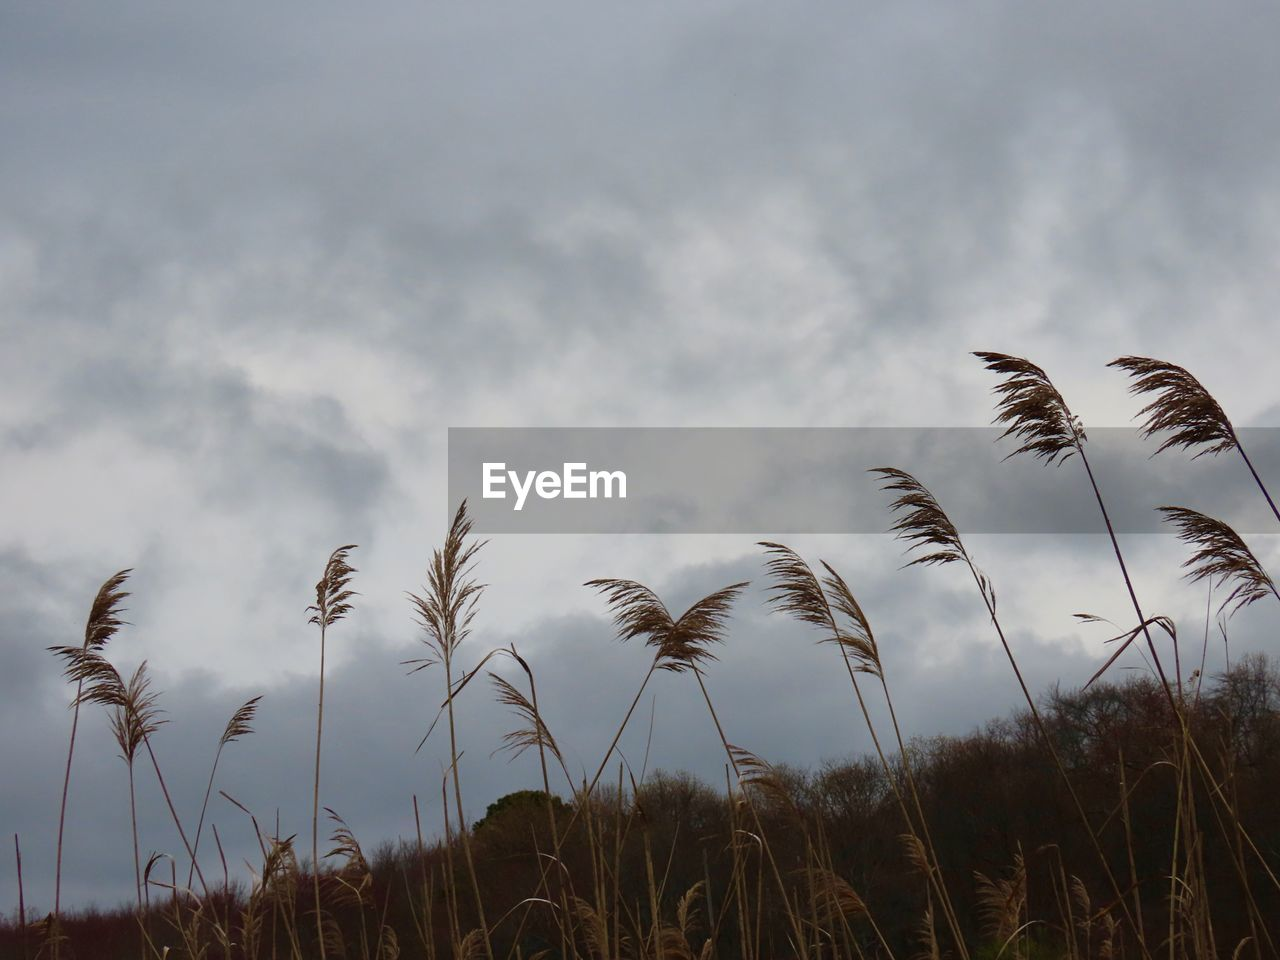 sky, cloud - sky, plant, growth, beauty in nature, tranquility, nature, no people, tranquil scene, scenics - nature, low angle view, environment, day, land, outdoors, grass, field, landscape, sunset, non-urban scene, timothy grass, stalk